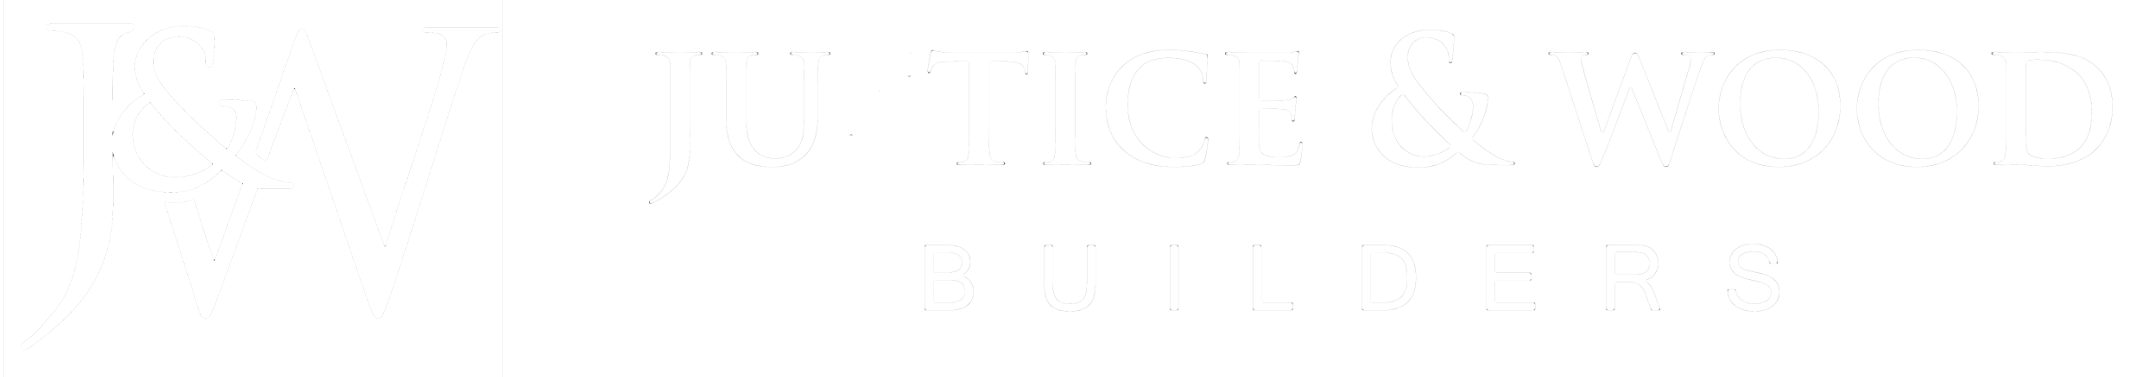 Justice and Wood Builders logo